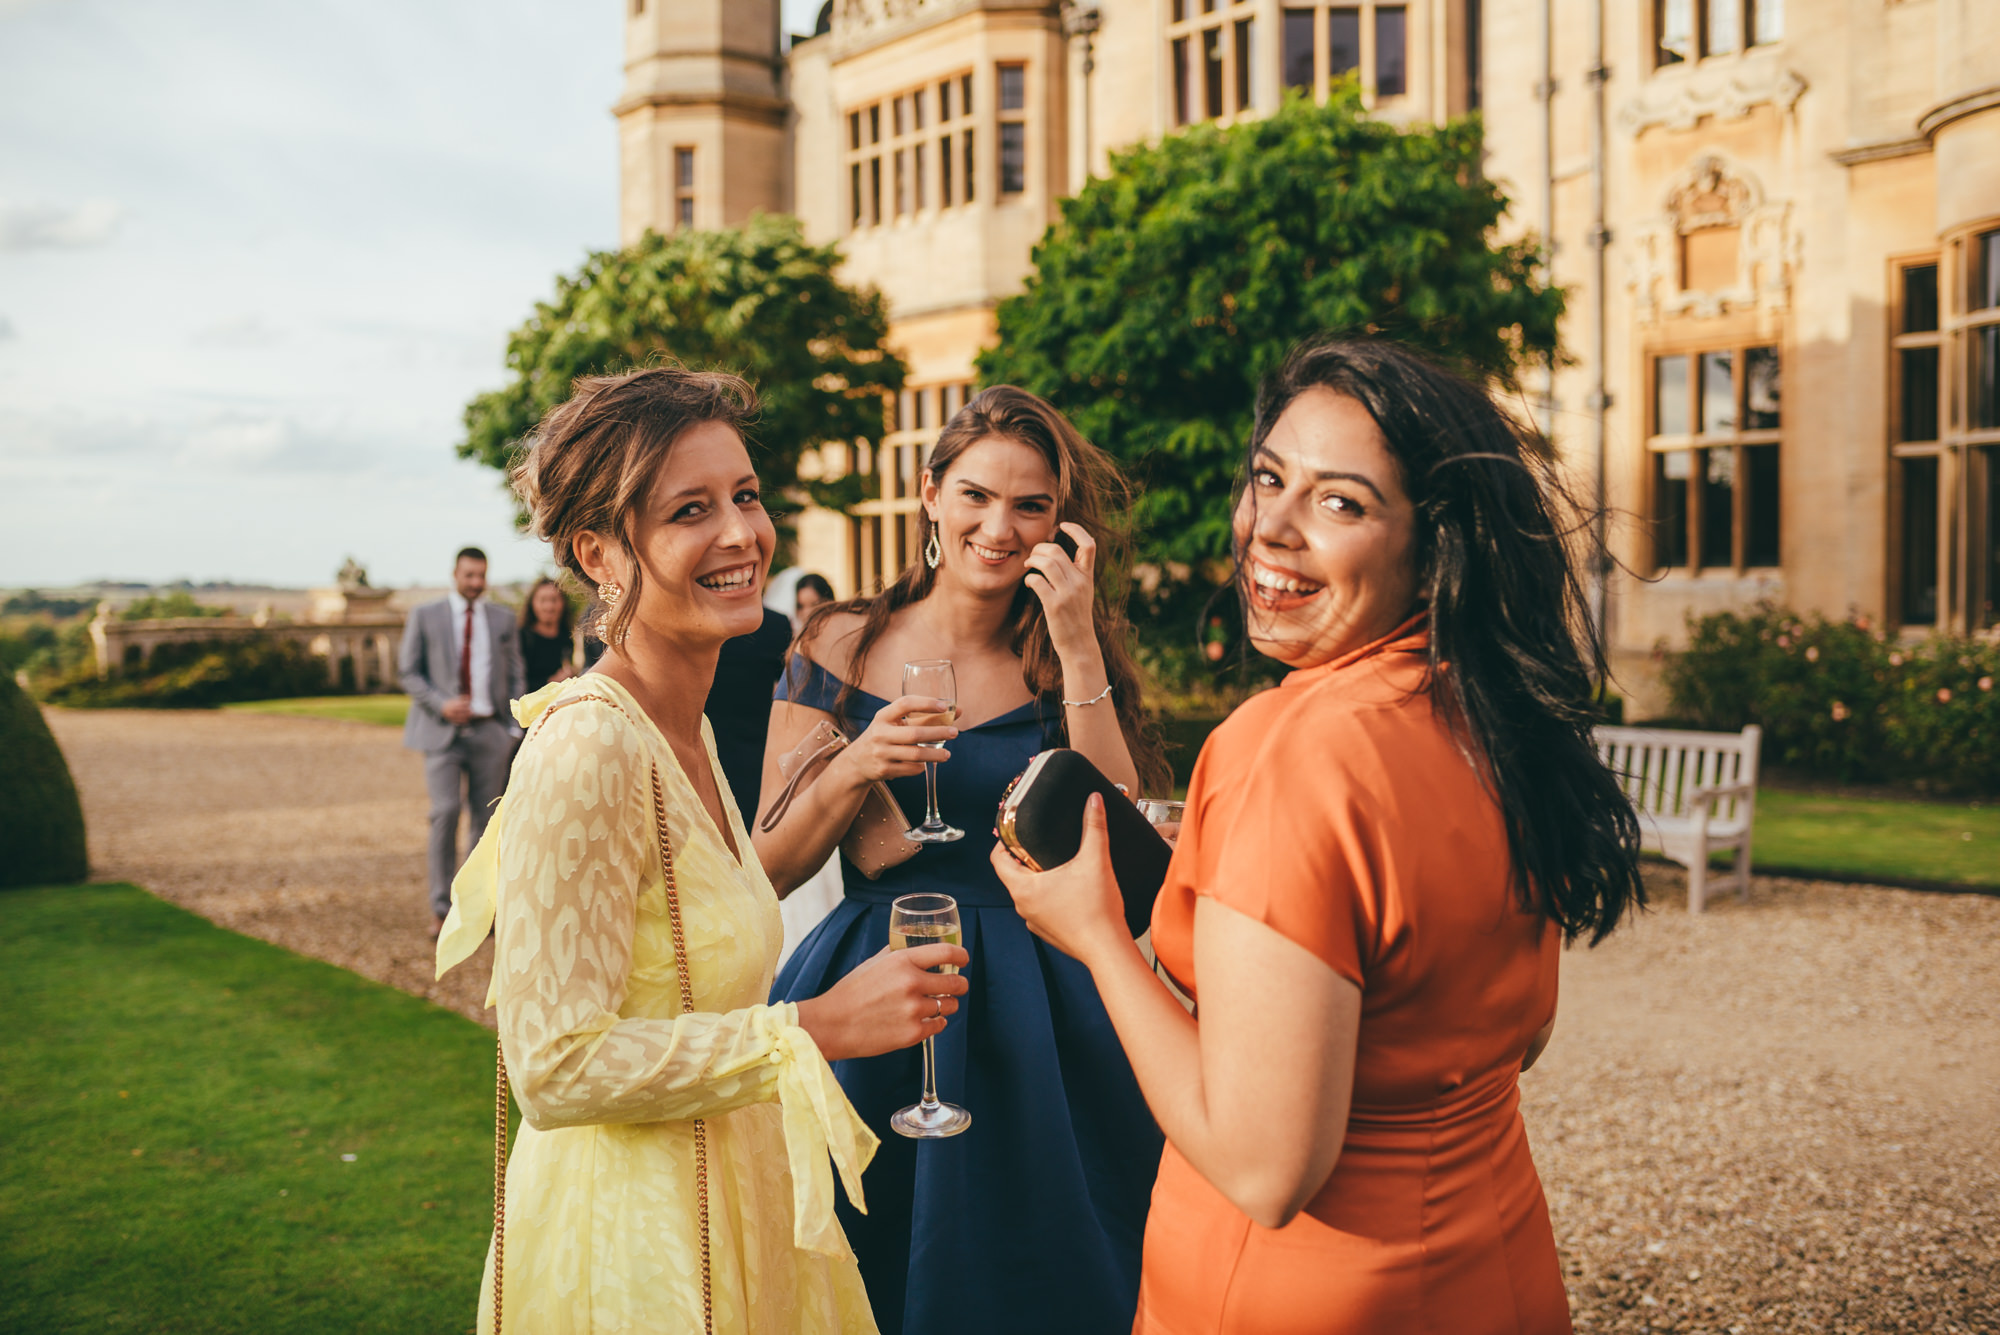 female wedding guests smiling